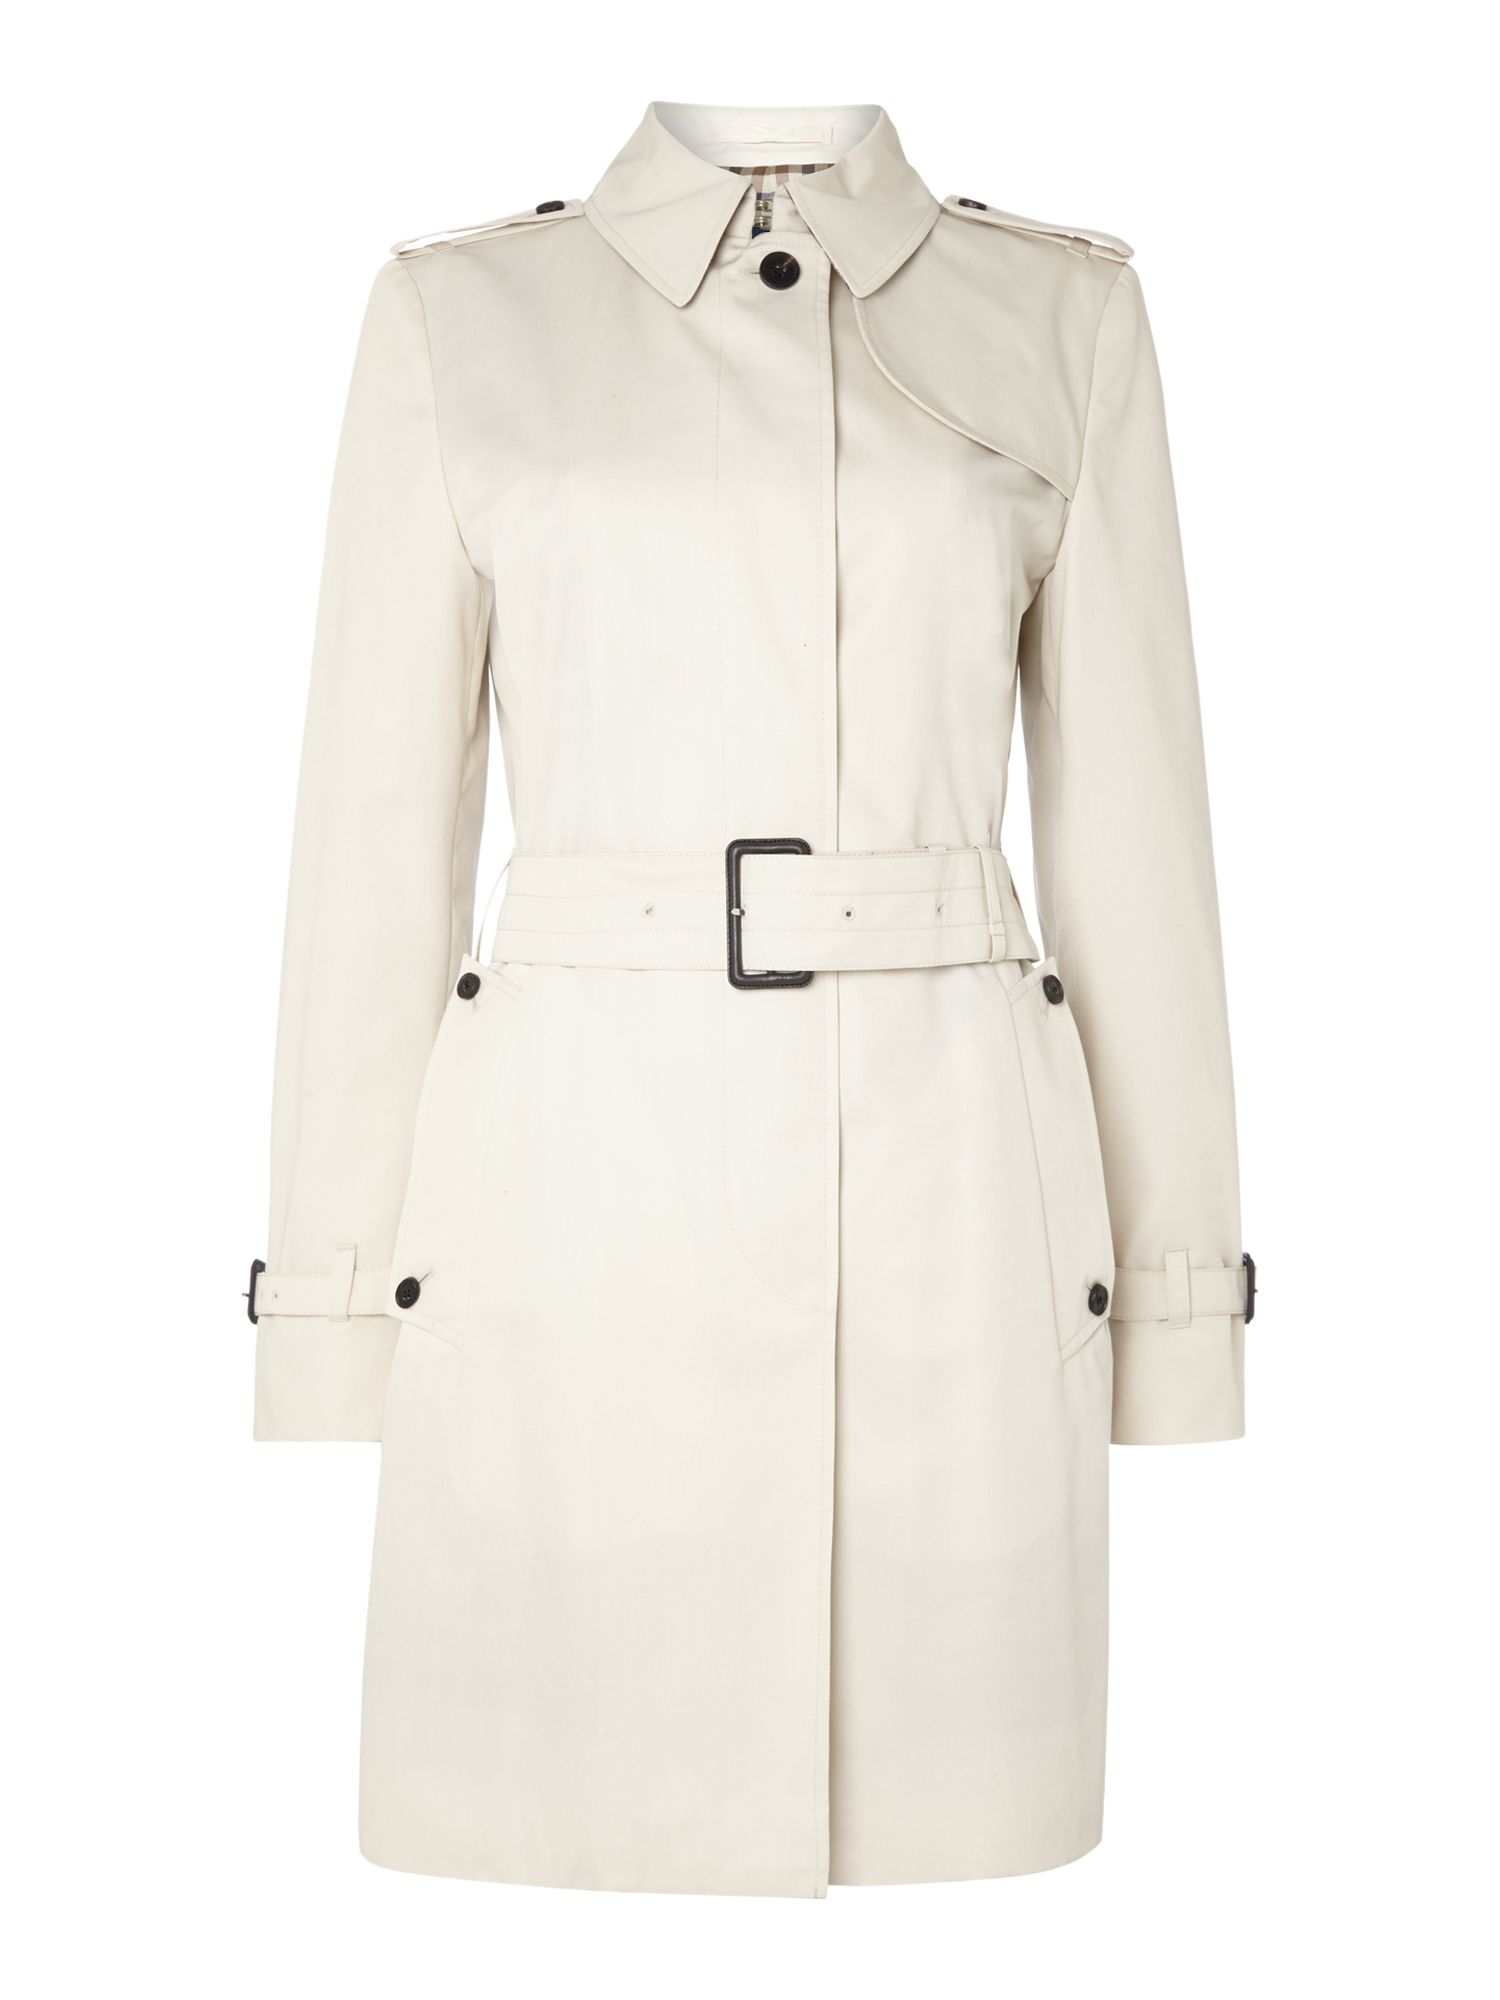 Aquascutum Franca Single Breasted Raincoat, Cream